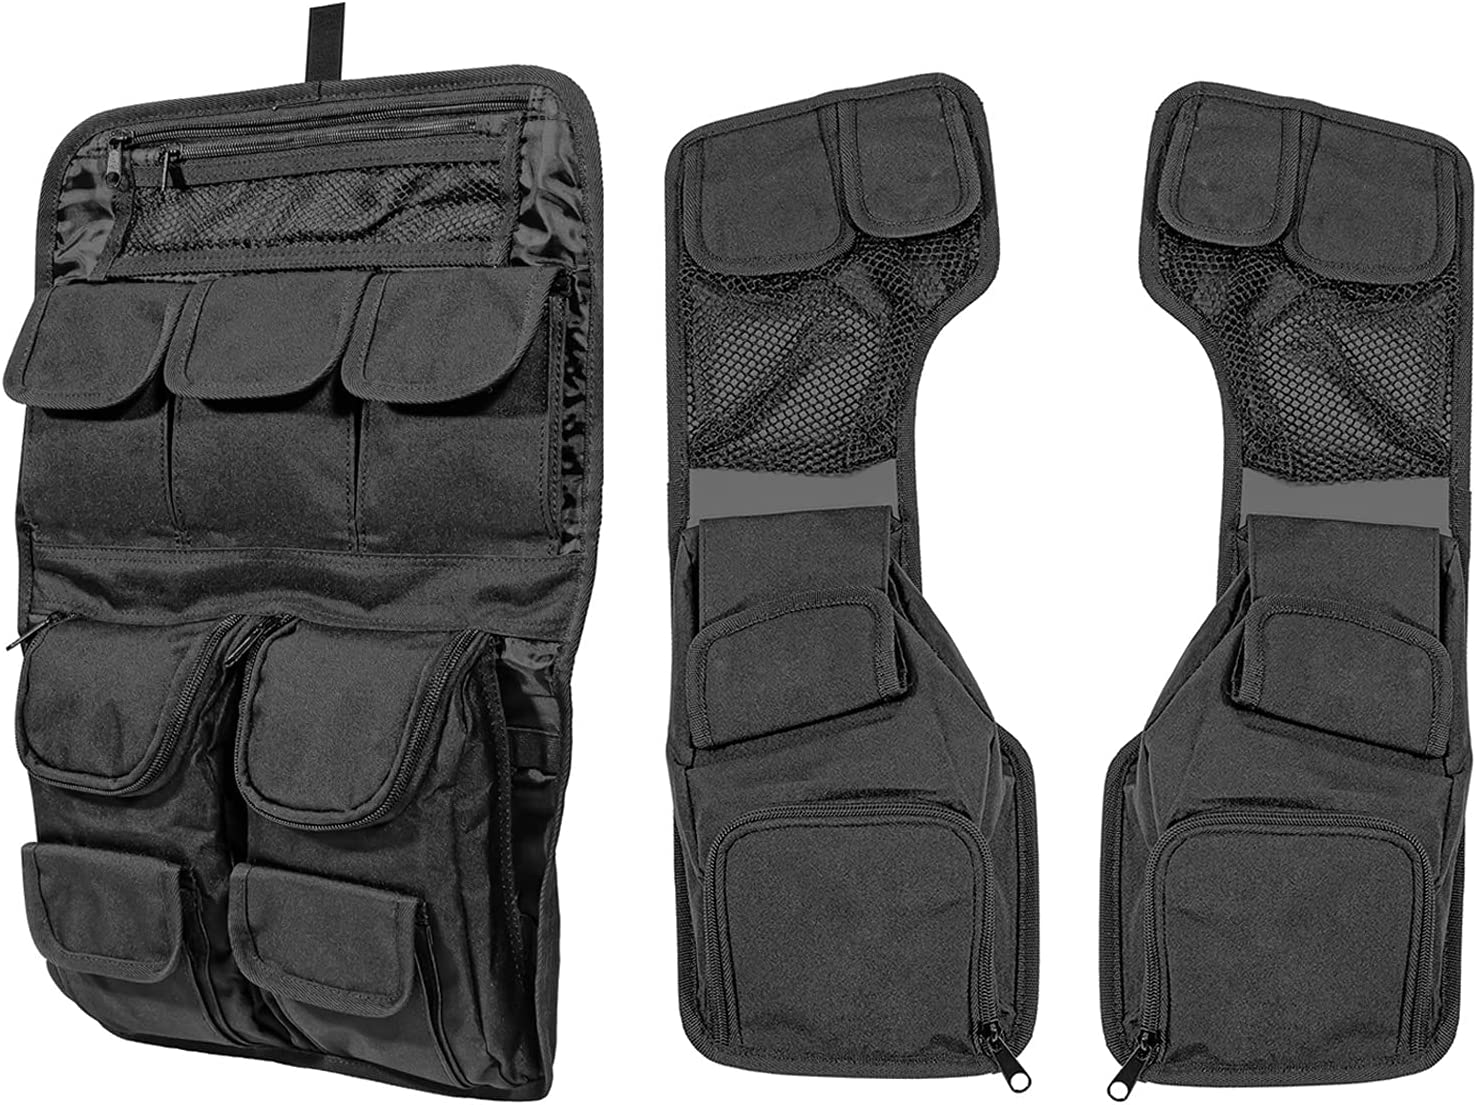 Dasen Black Organizer Storage Bags Pouch Kit Compatible with Luggage Tour Pack Pak & Saddlebags Lid Compatible with Harley Touring Road King Electra Road Street Glide FLT FLH 1999-2013: Automotive